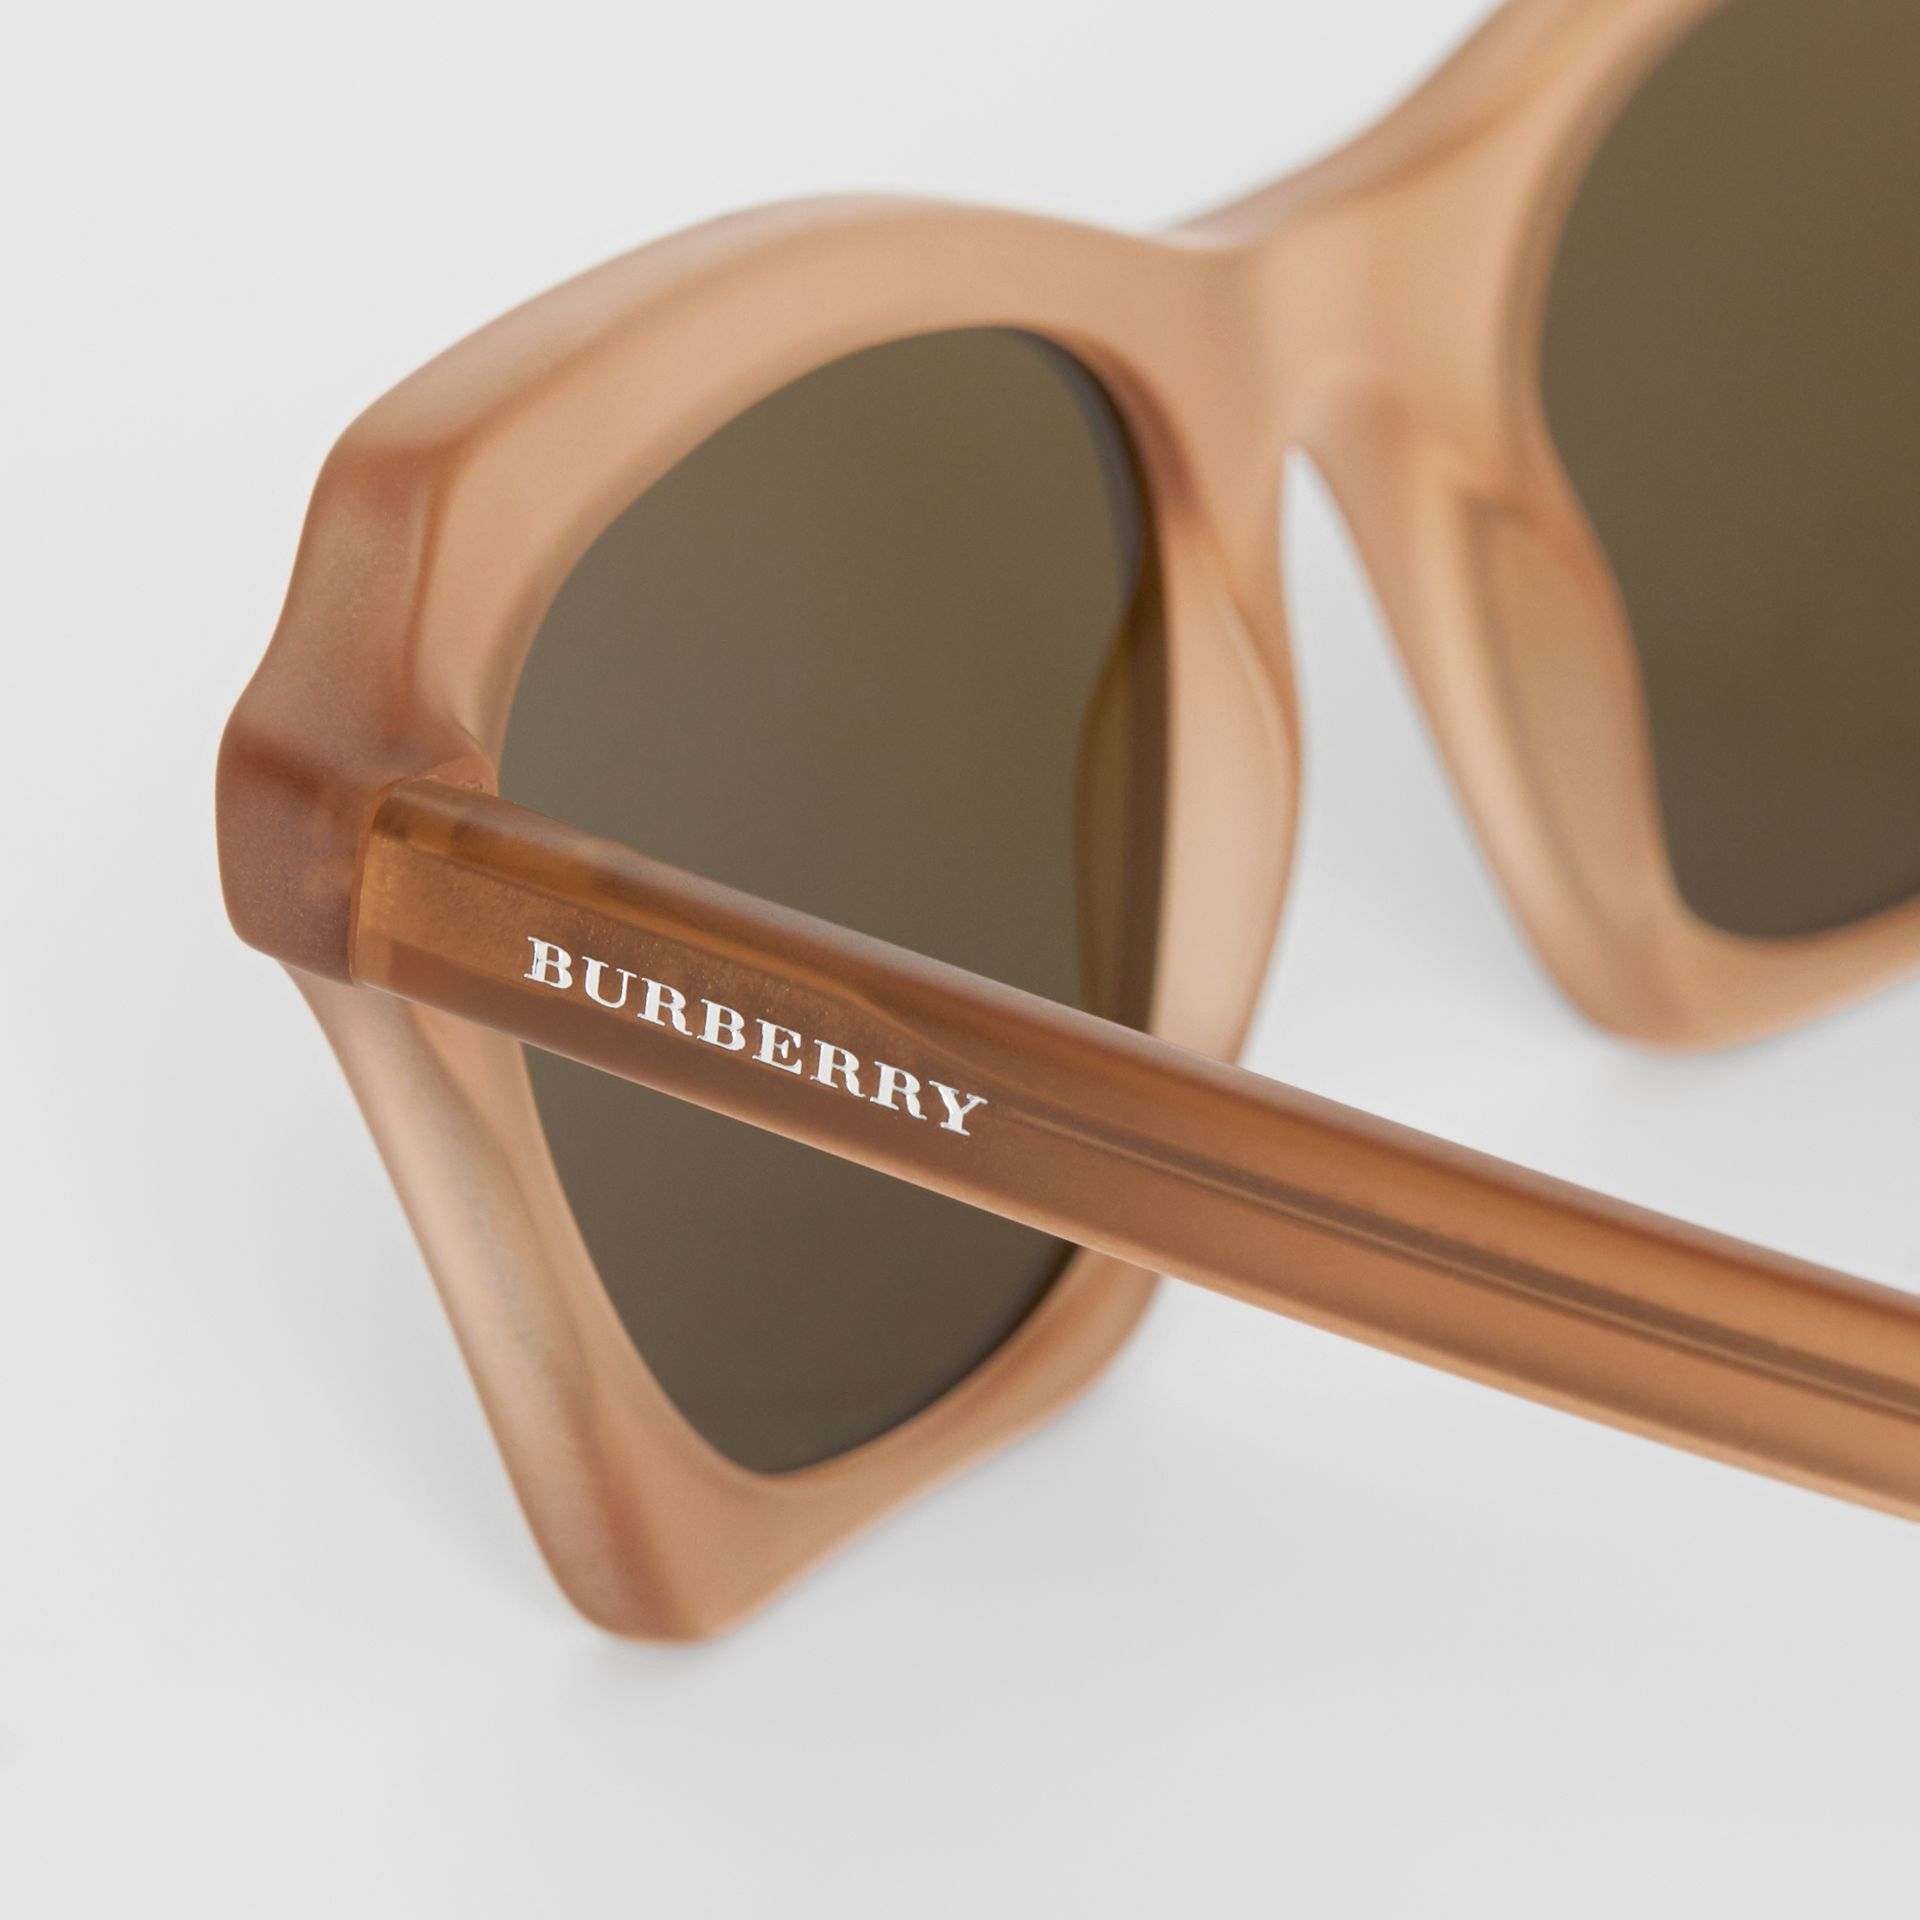 Butterfly Frame Sunglasses in Brown - Women | Burberry Australia - gallery image 1